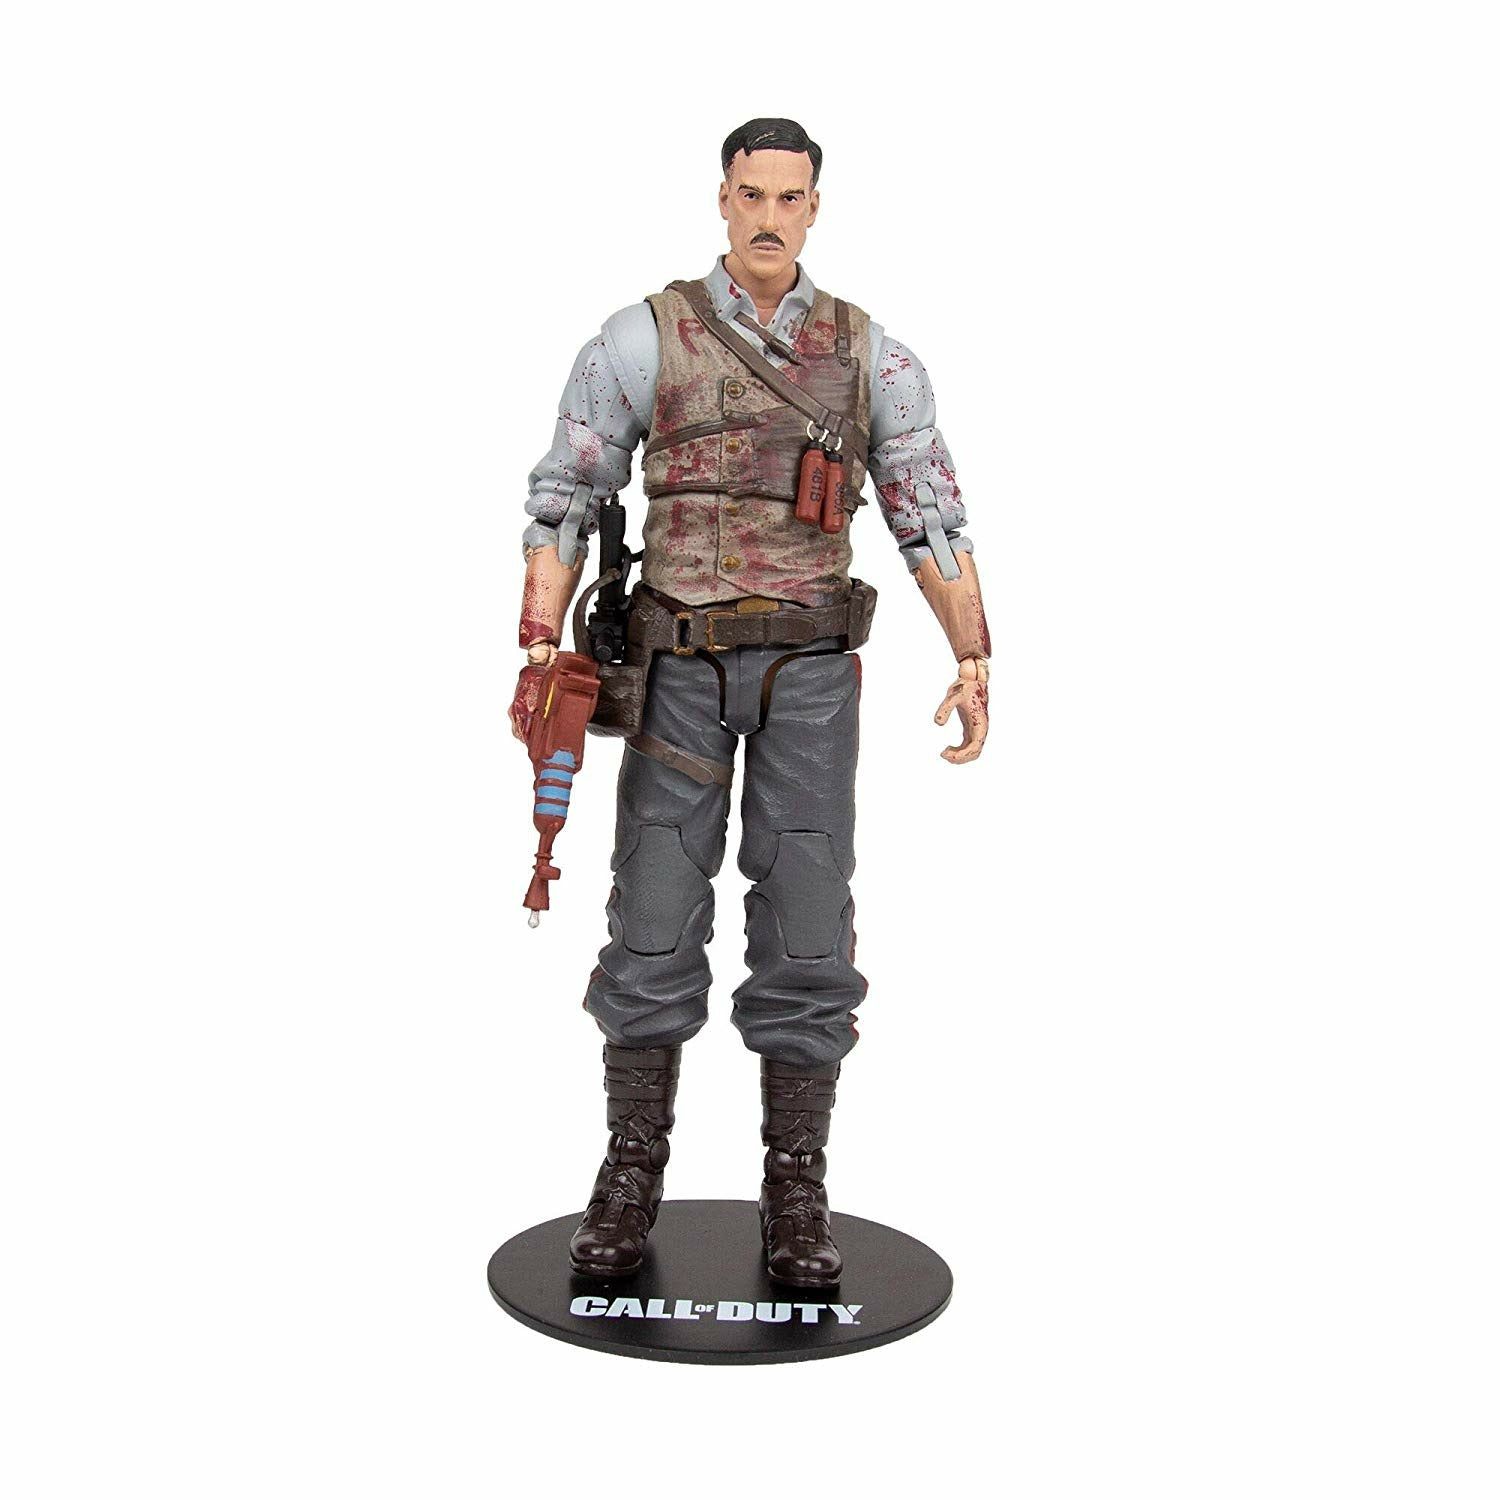 Call of Duty 2 Richtofen 7 inch Action Figure